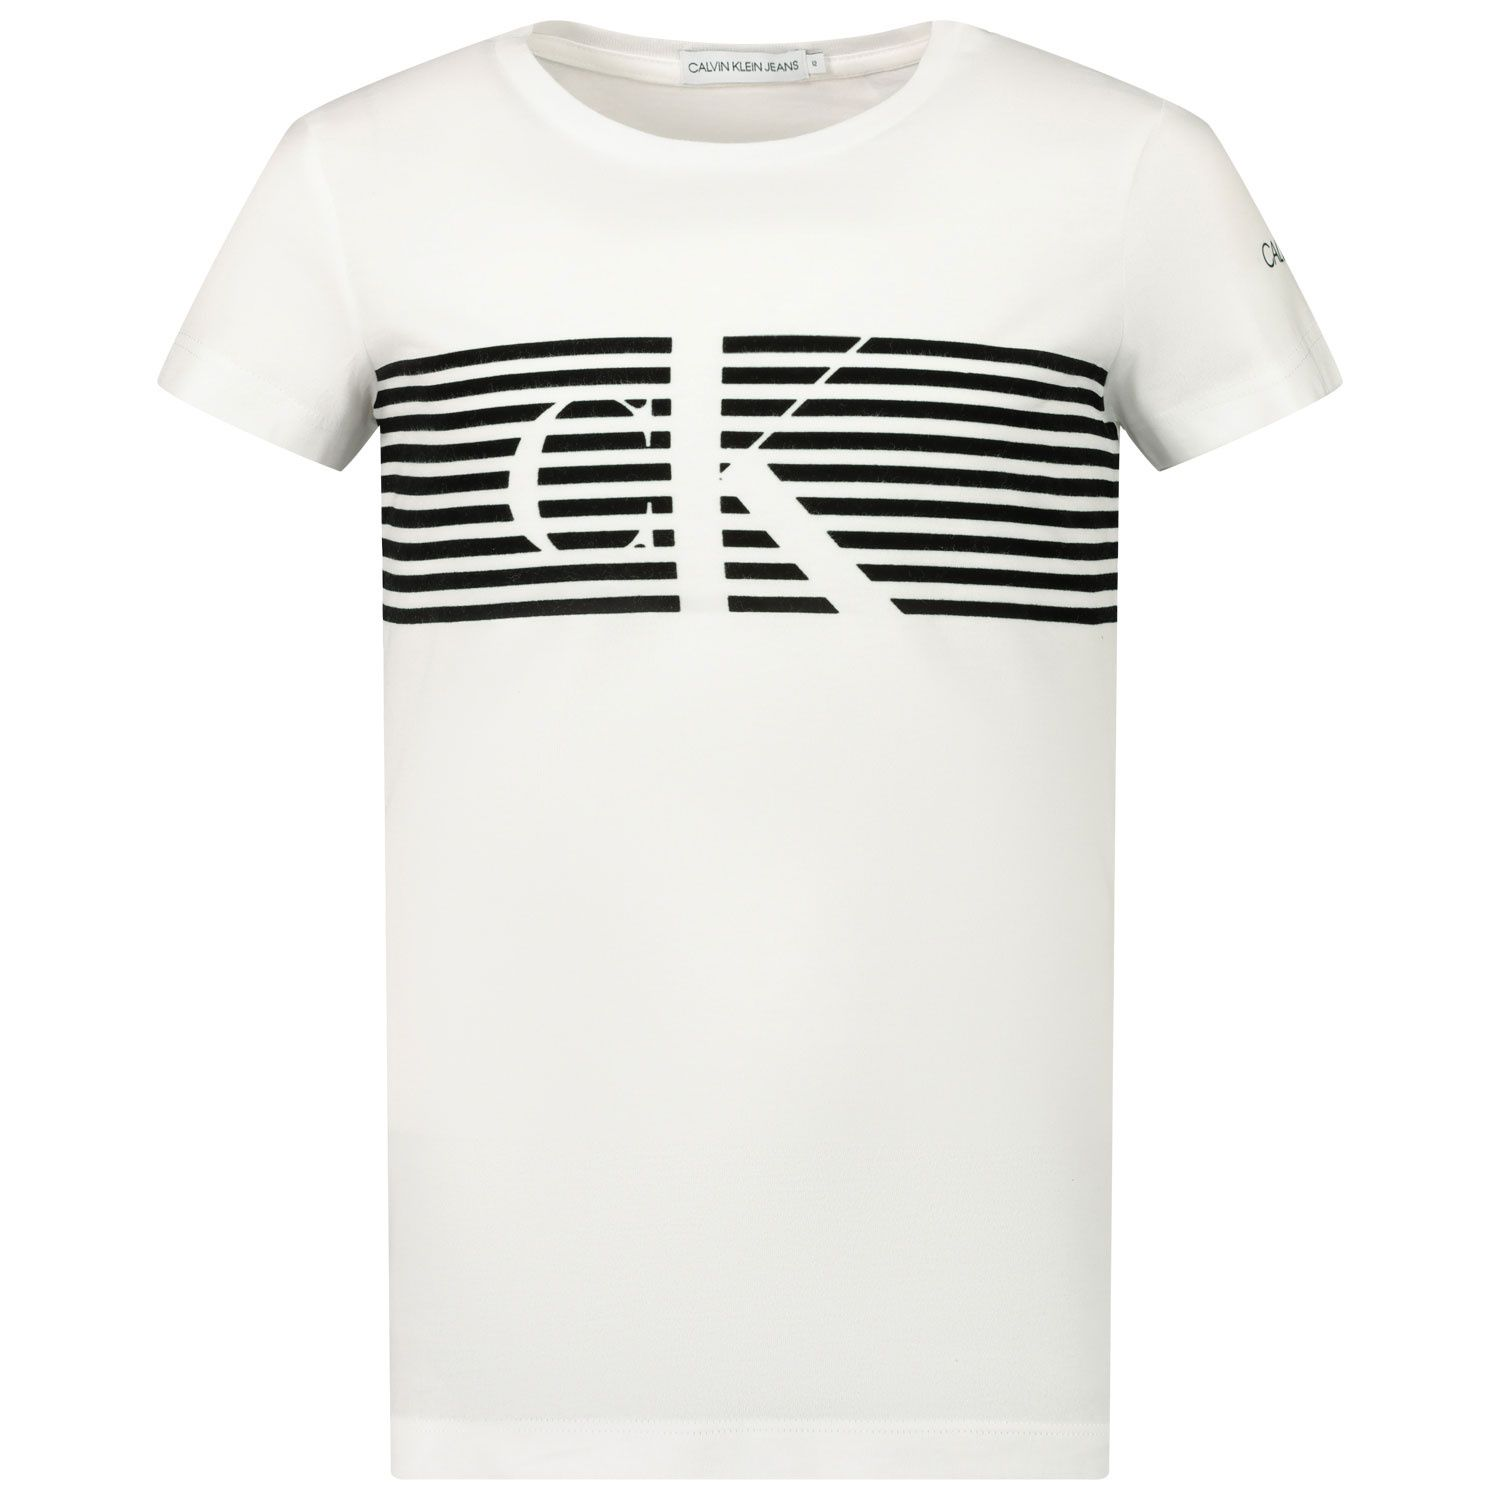 Picture of Calvin Klein IG0IG00569 kids t-shirt white